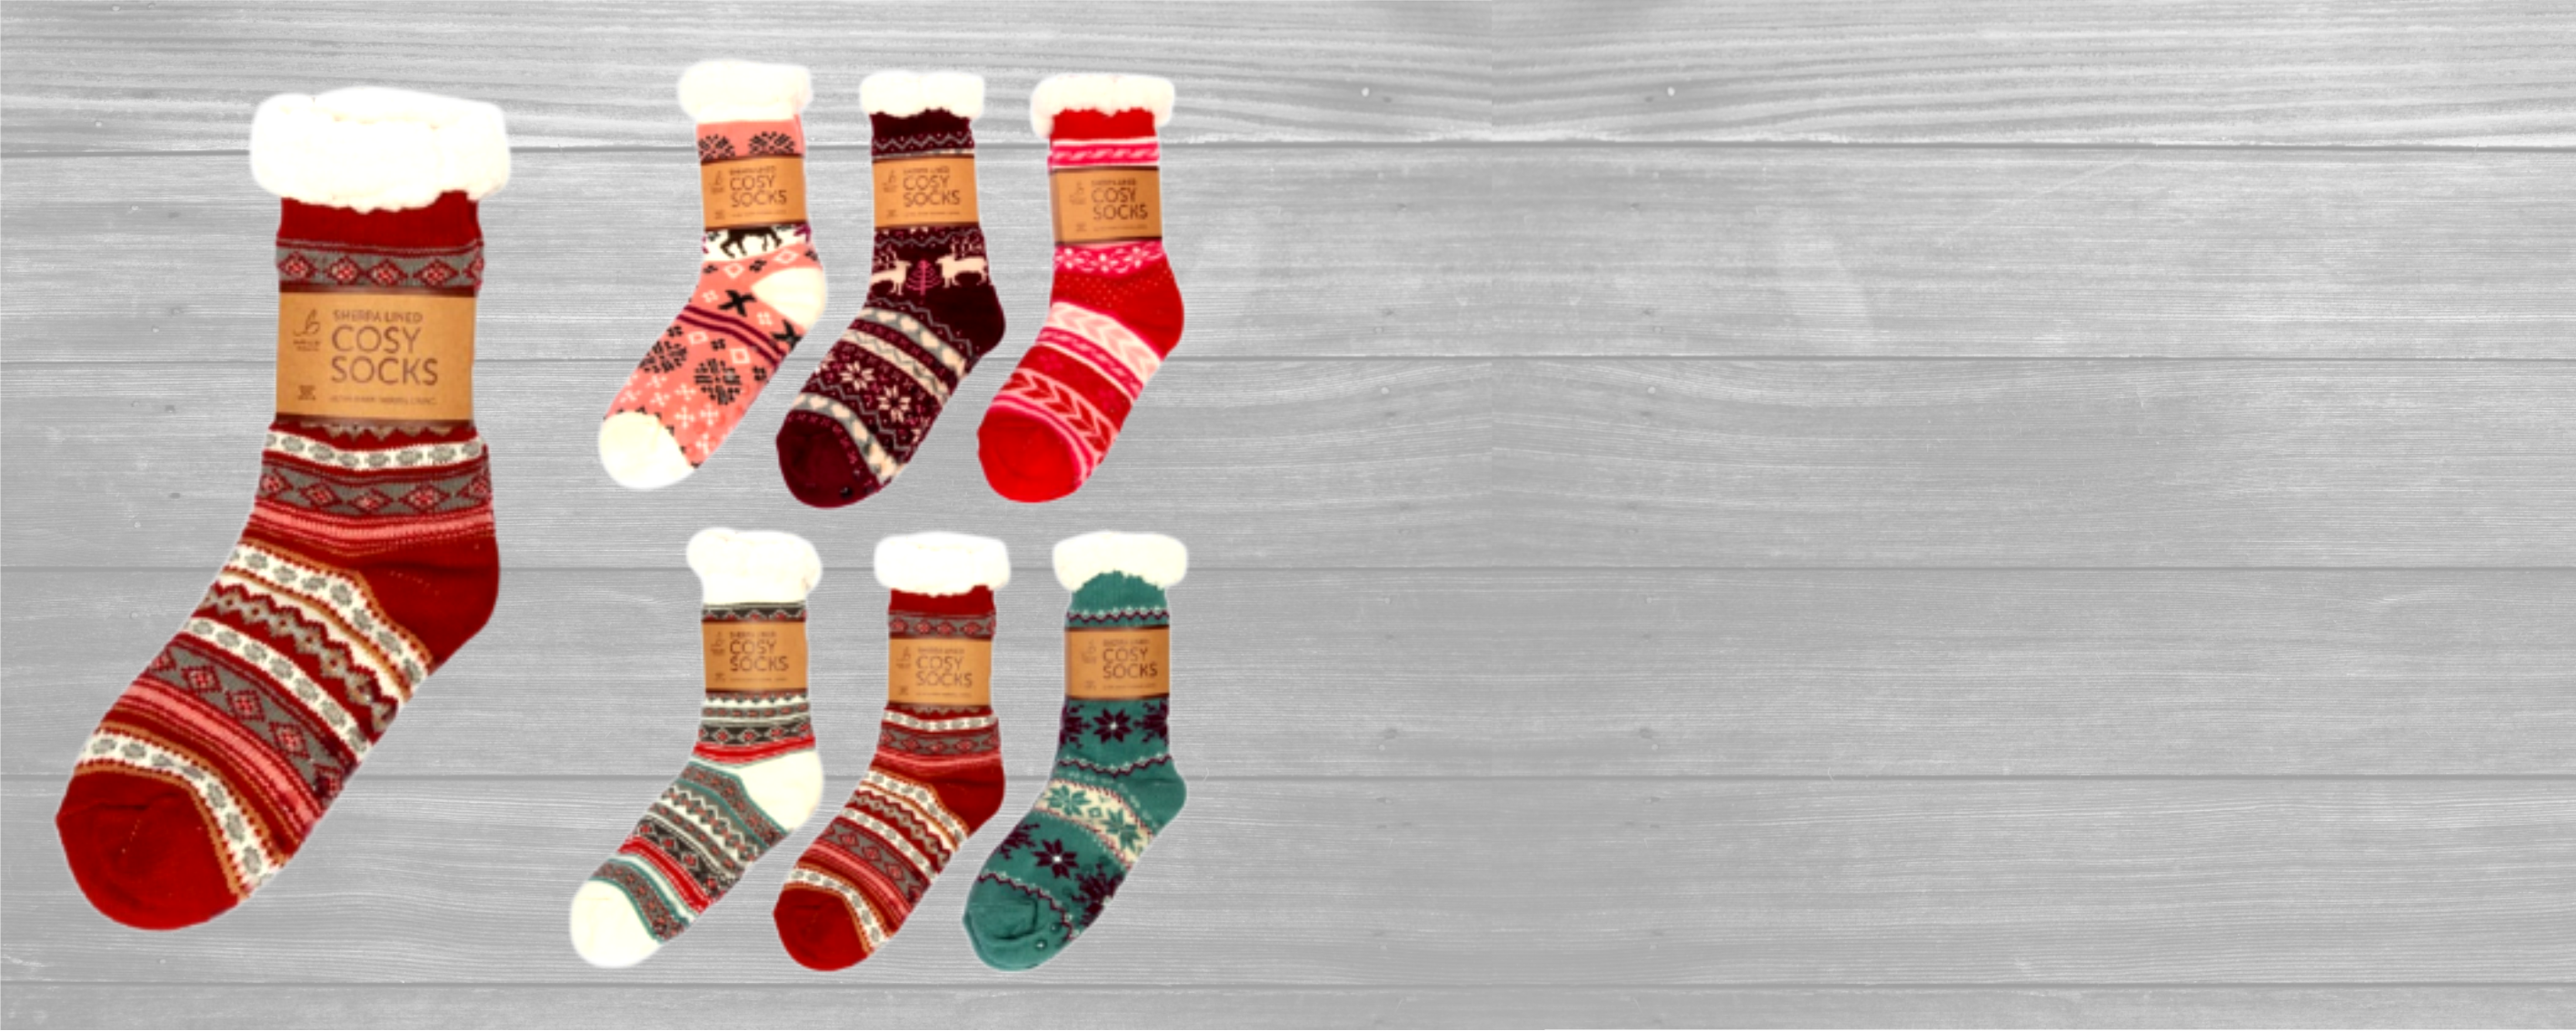 BEST SELLING COSY WINTER SOCKS!